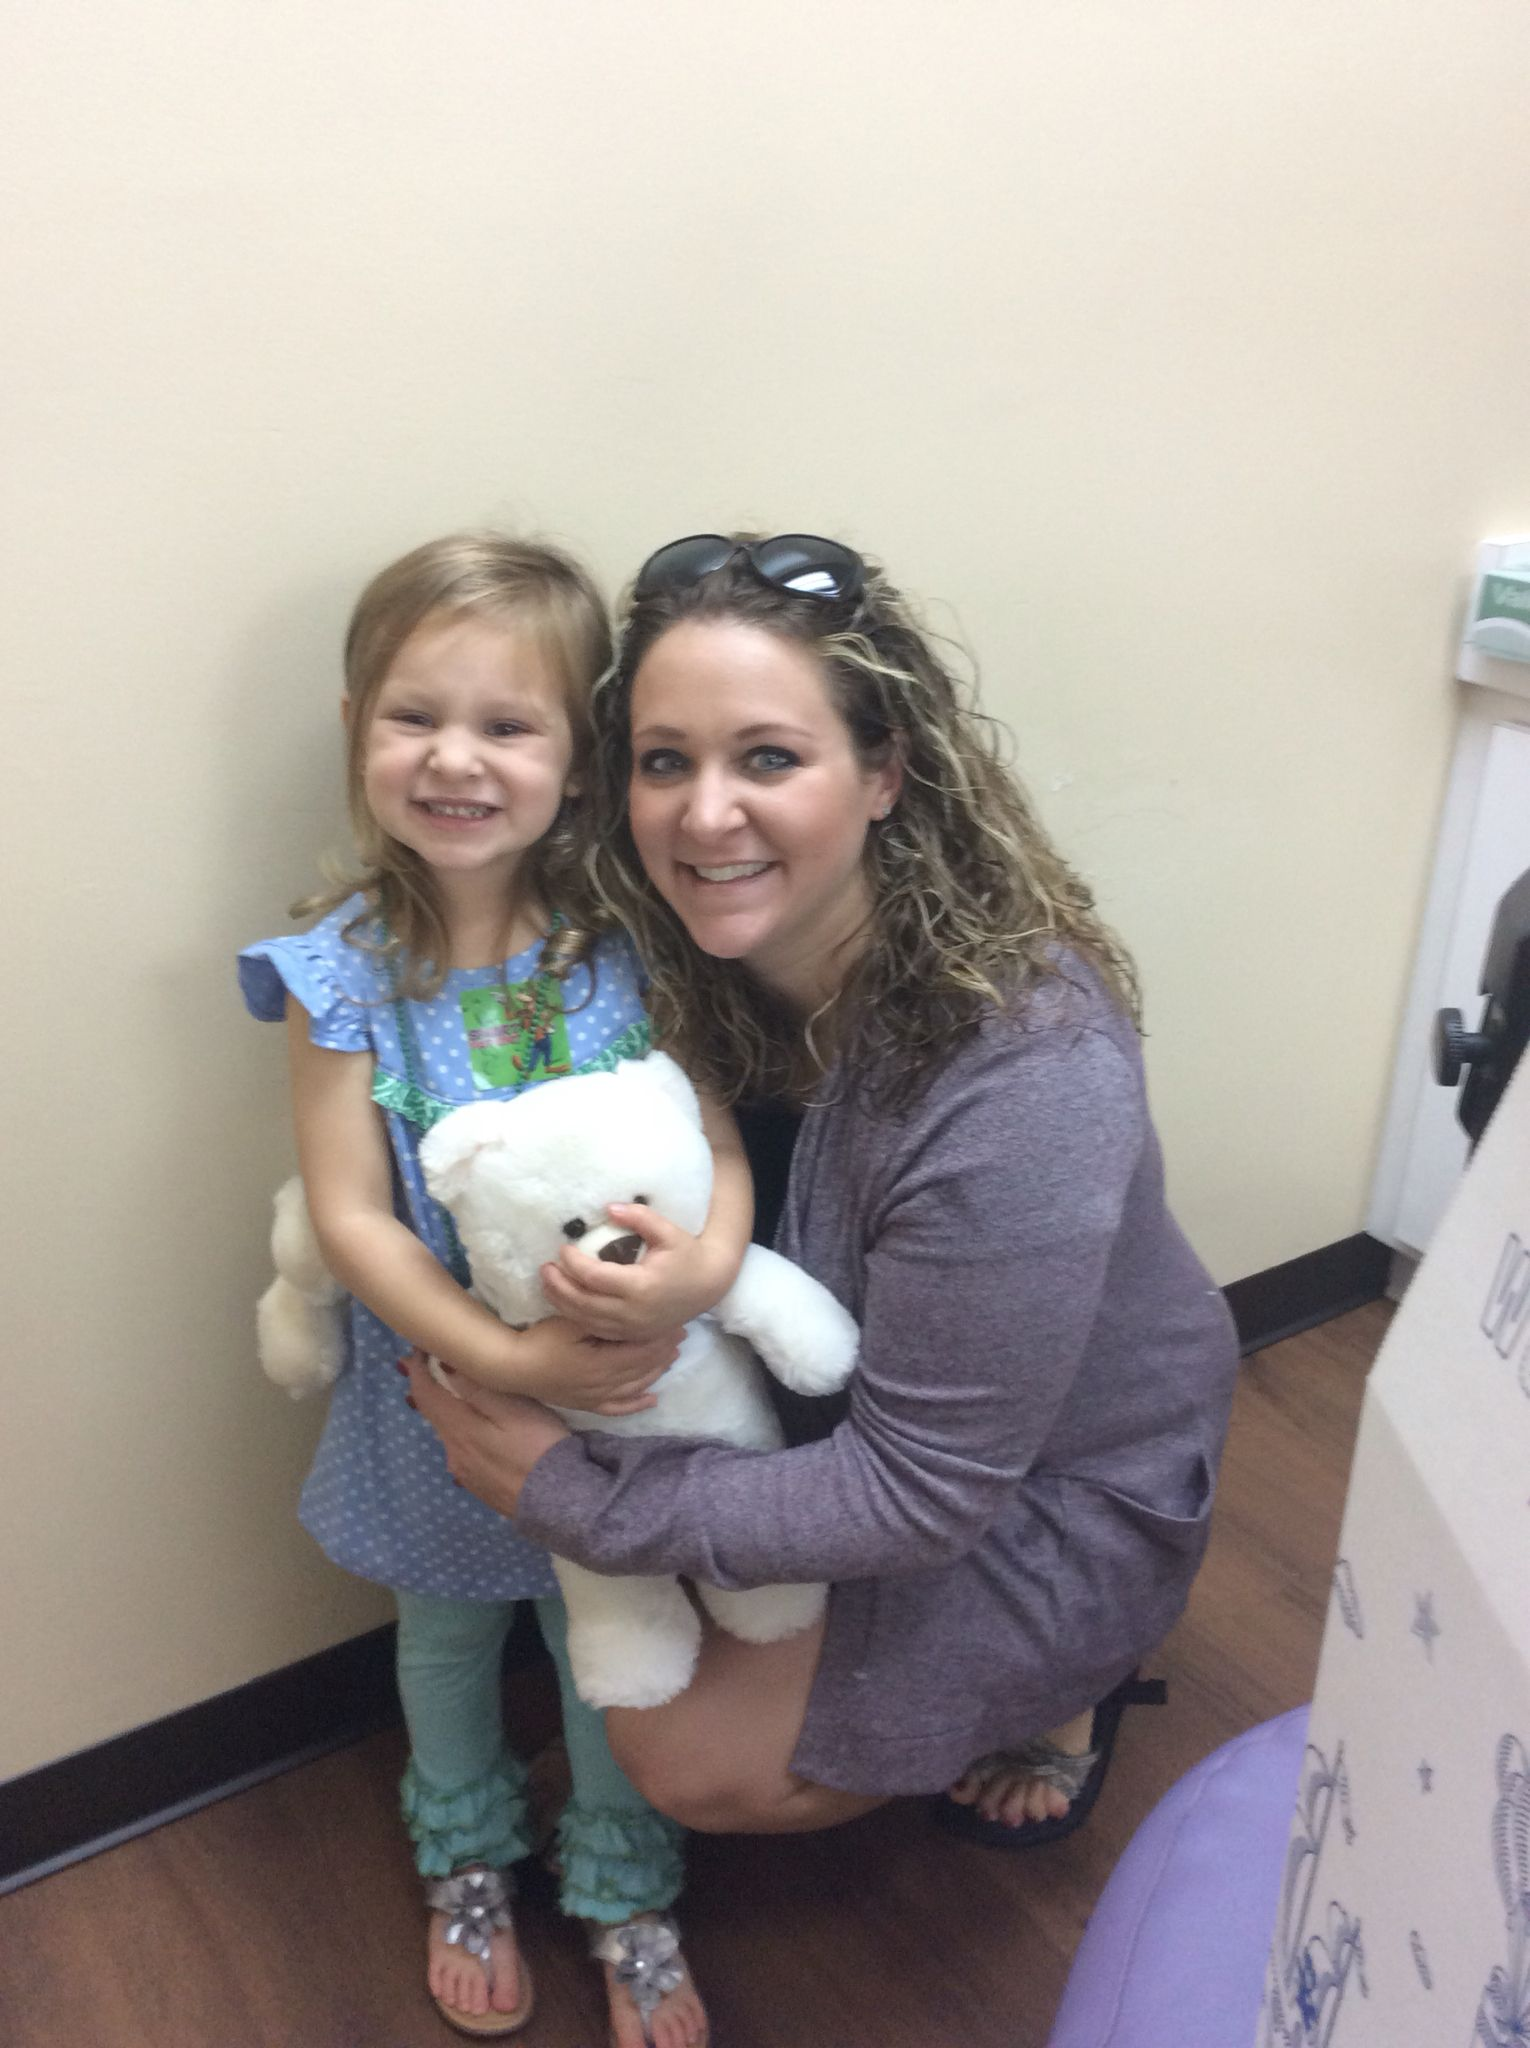 So happy you guys came to see us today!! Dental care